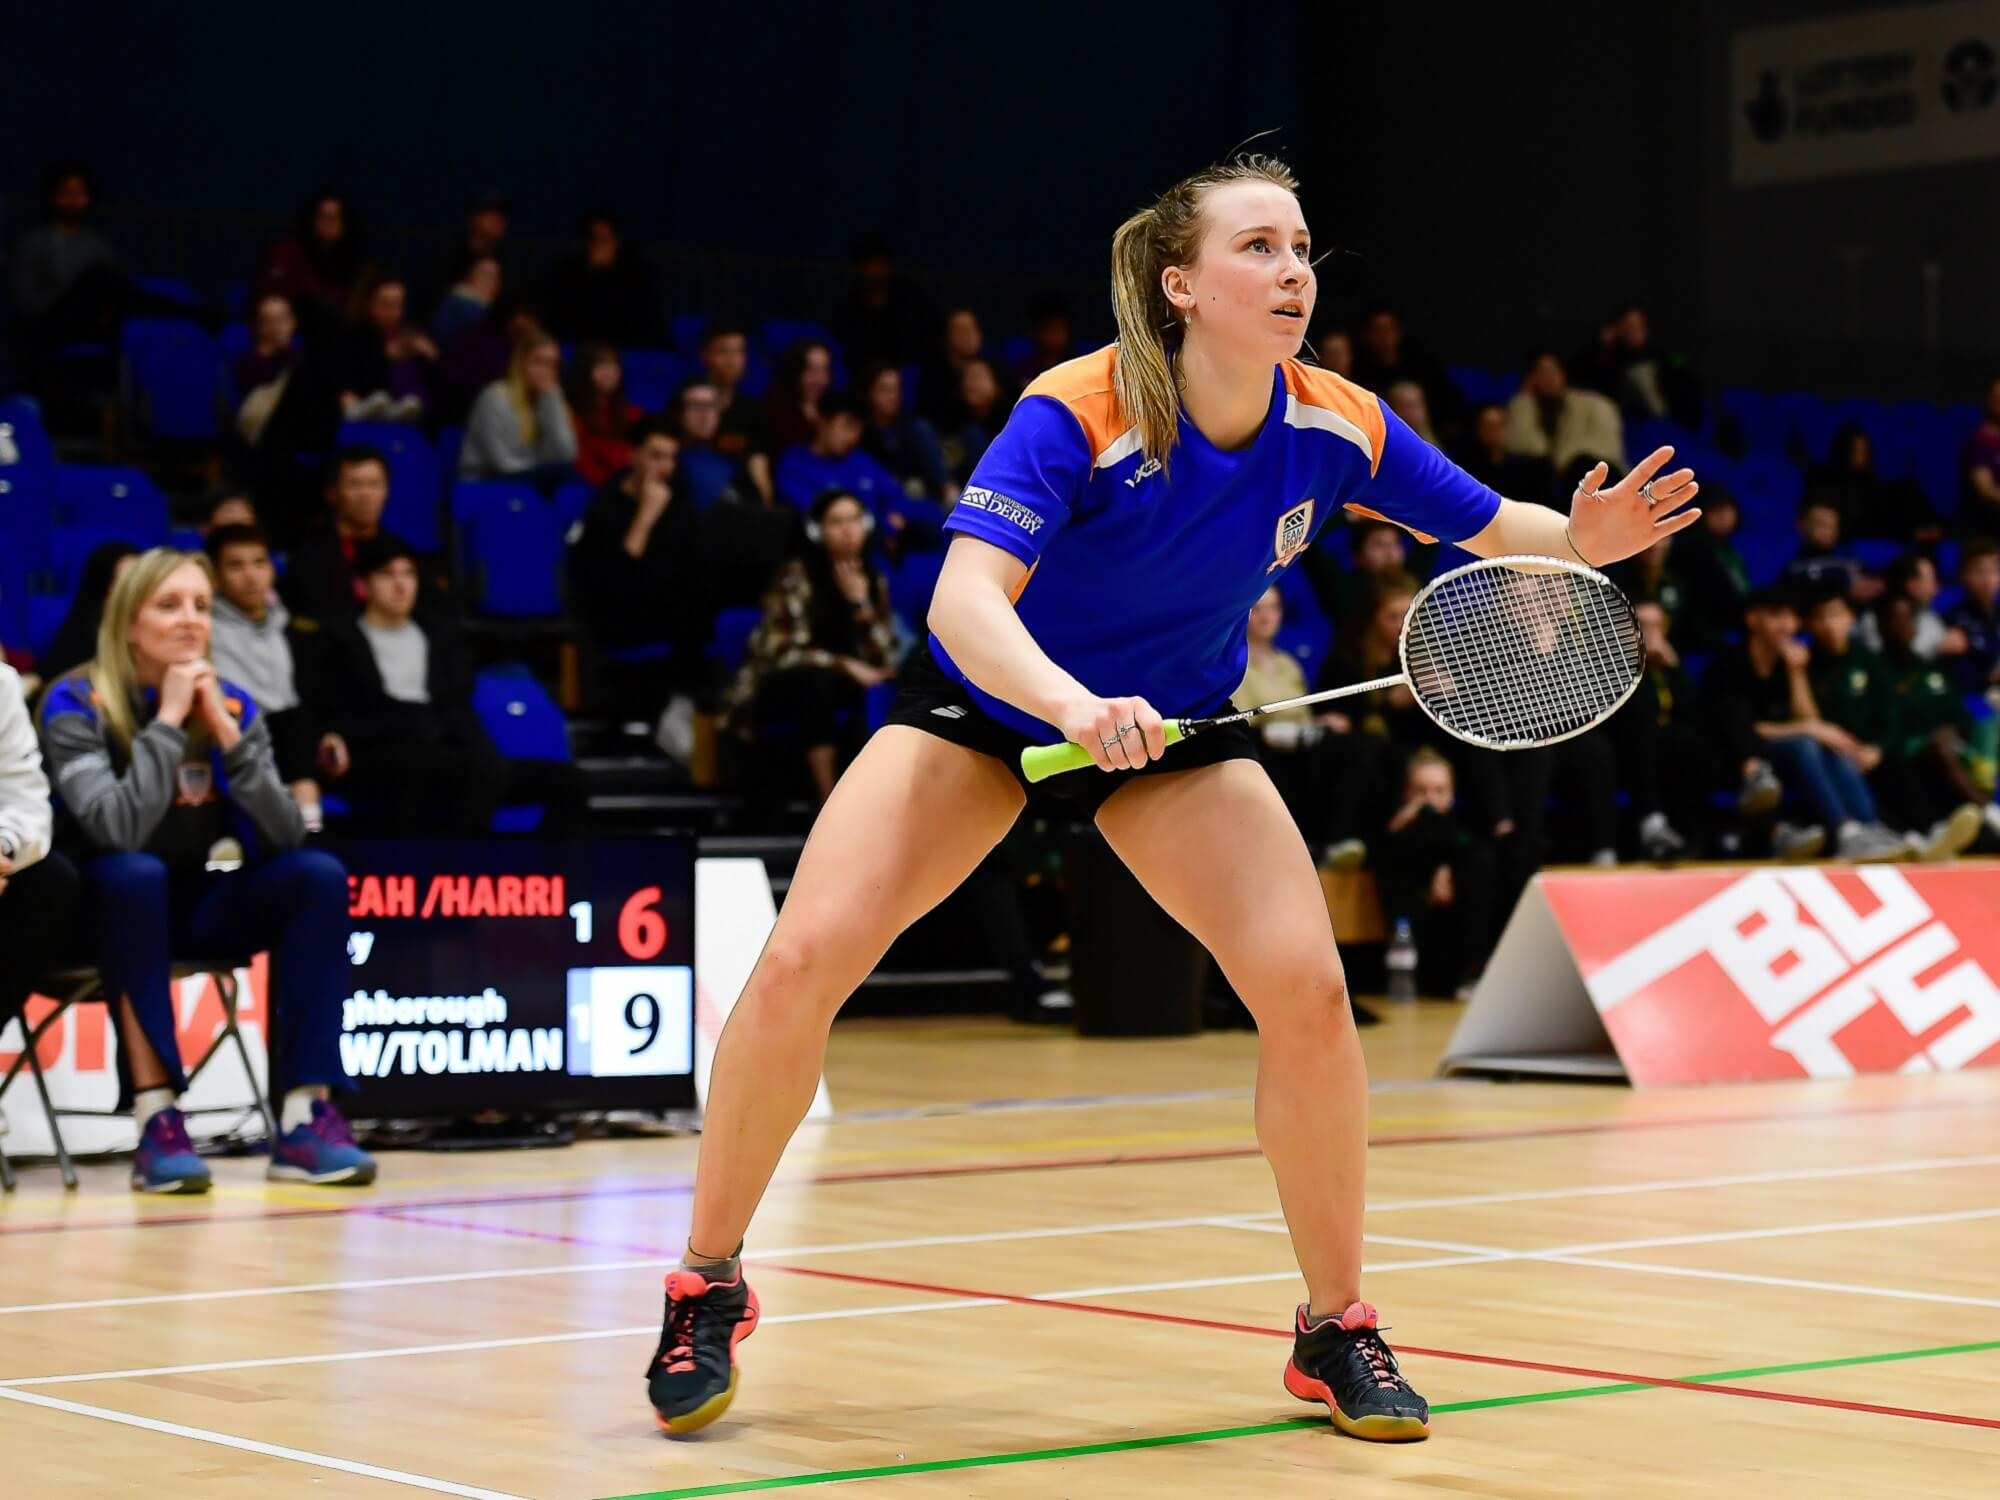 Badminton player Abbygael Harris competing for Team Derby